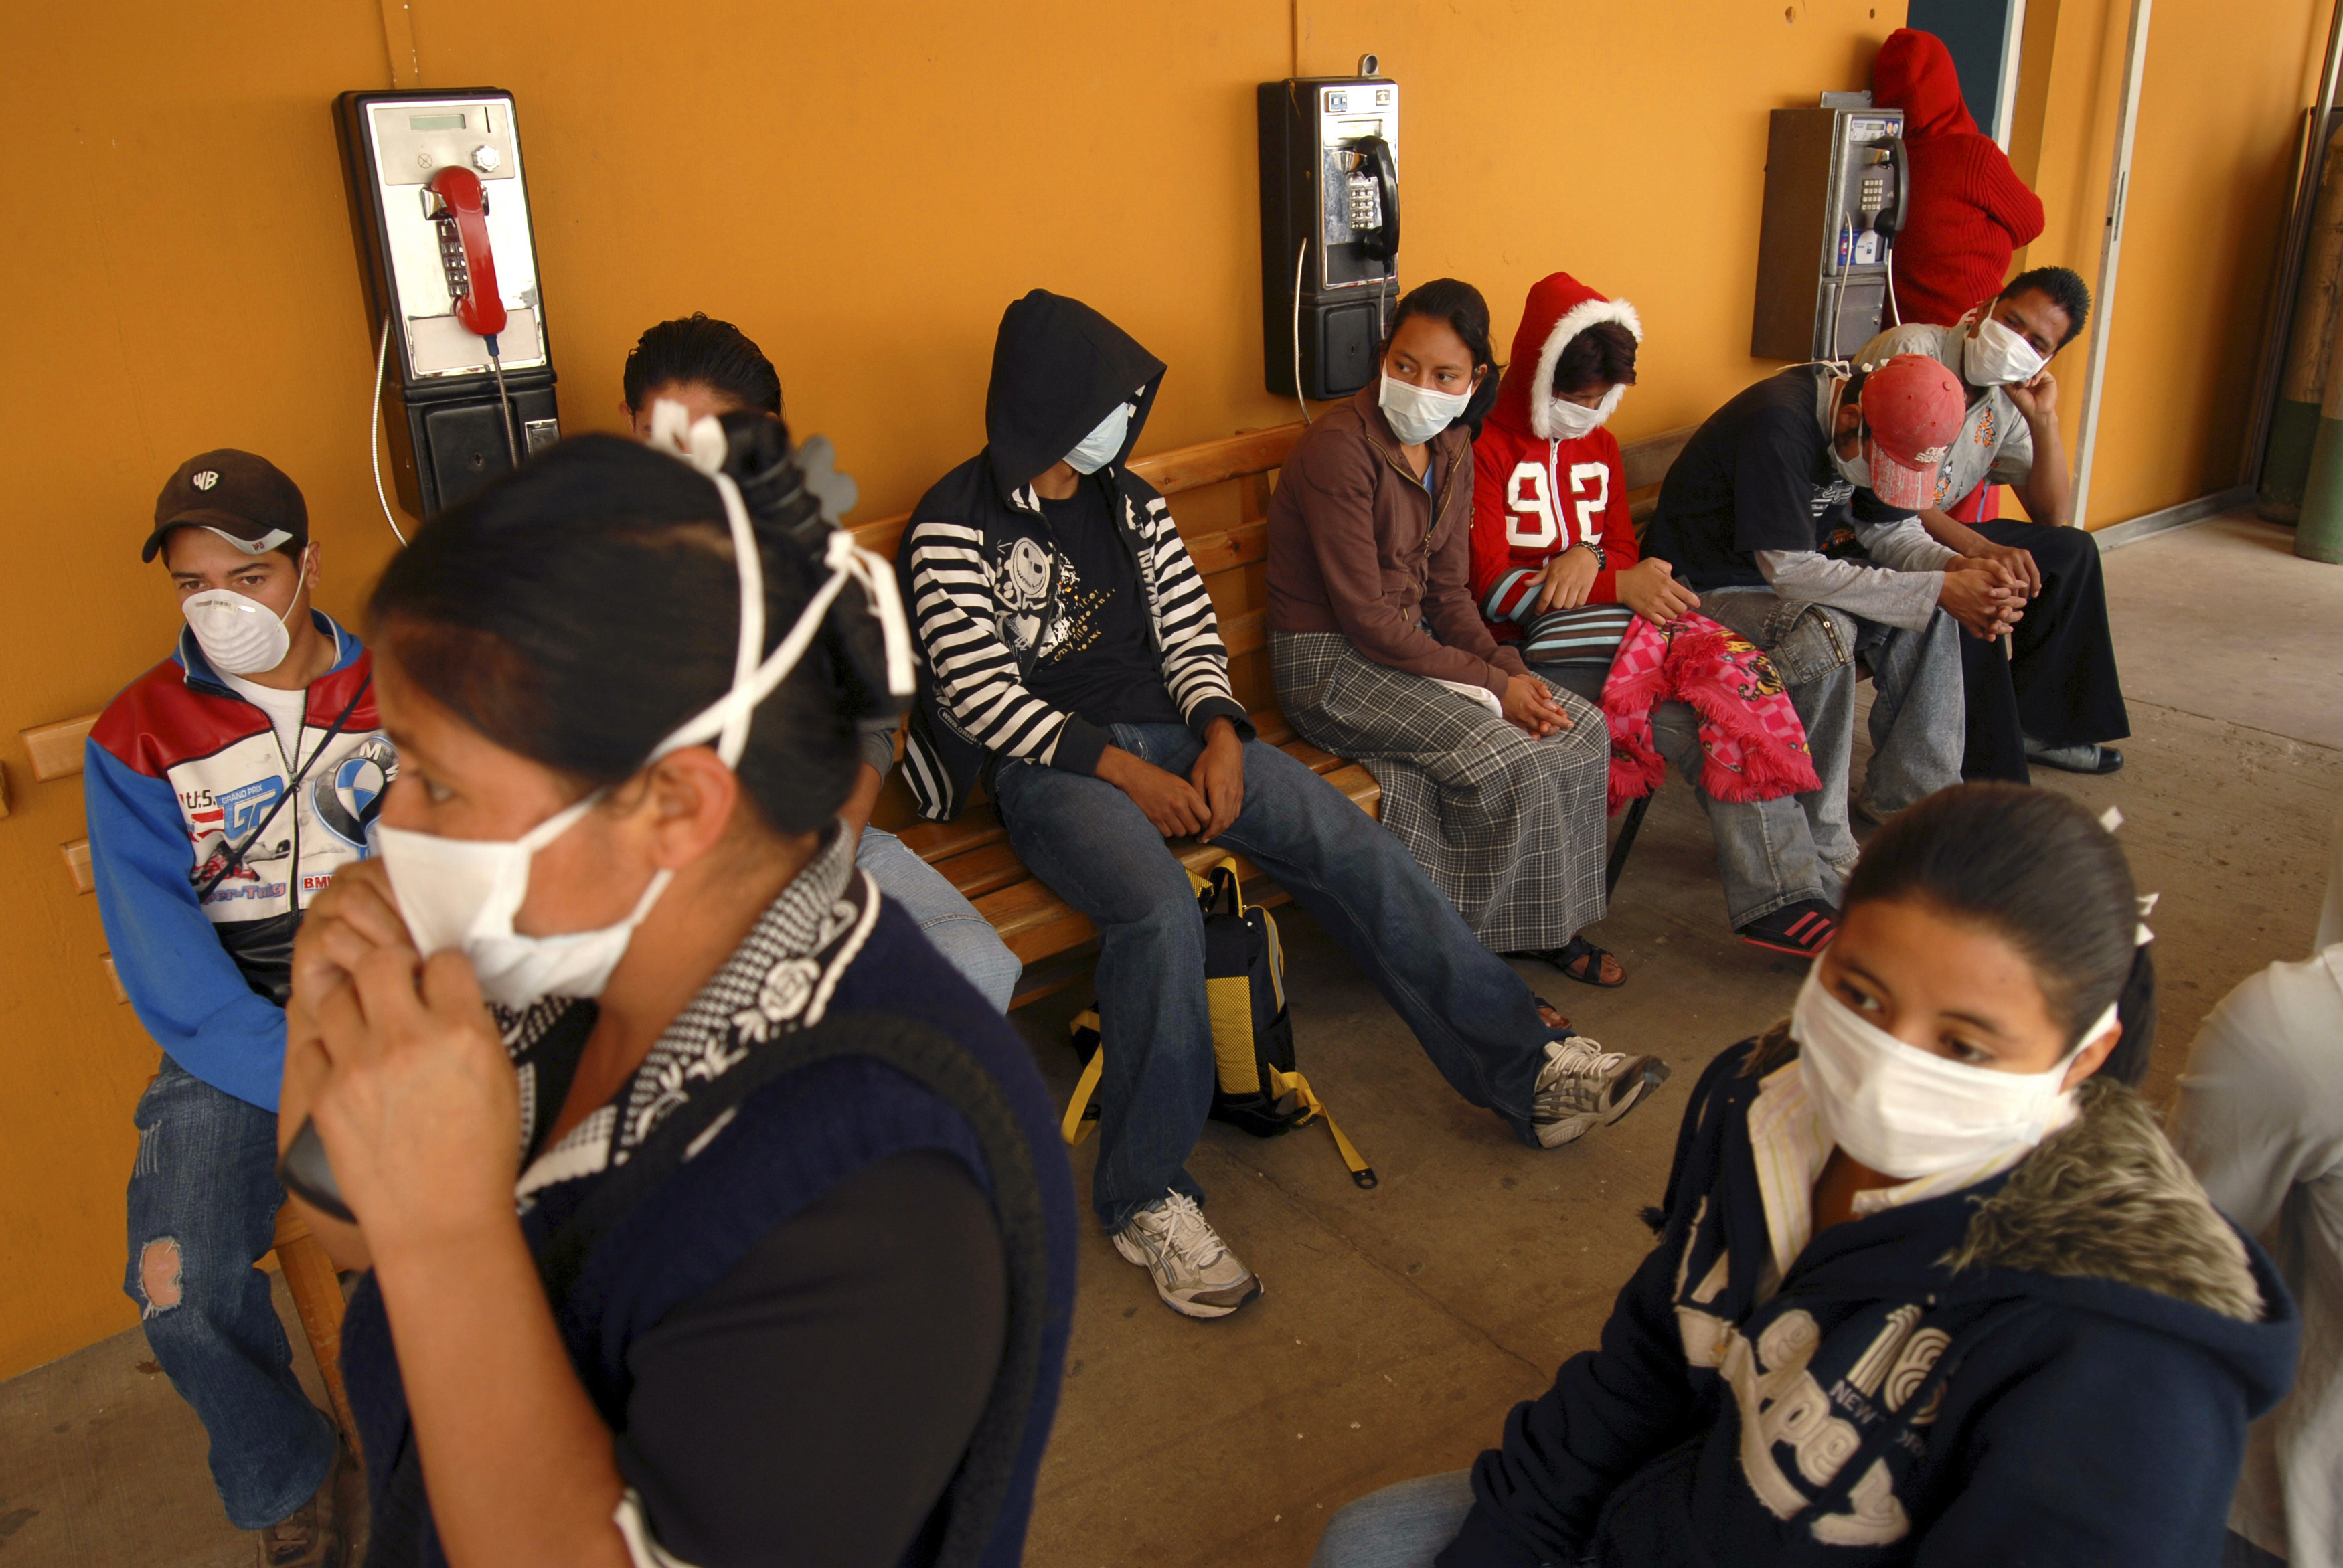 Patients wearing masks wait to be attended inside the Roosevelt hospital in Guatemala City April 28, 2009. Guatemala is checking all travelers arriving from Mexico for signs of flu and stopping anyone with symptoms of the virus at border crossings. REUTERS/Doriam Morales (GUATEMALA HEALTH) - GM1E54T0RMR02